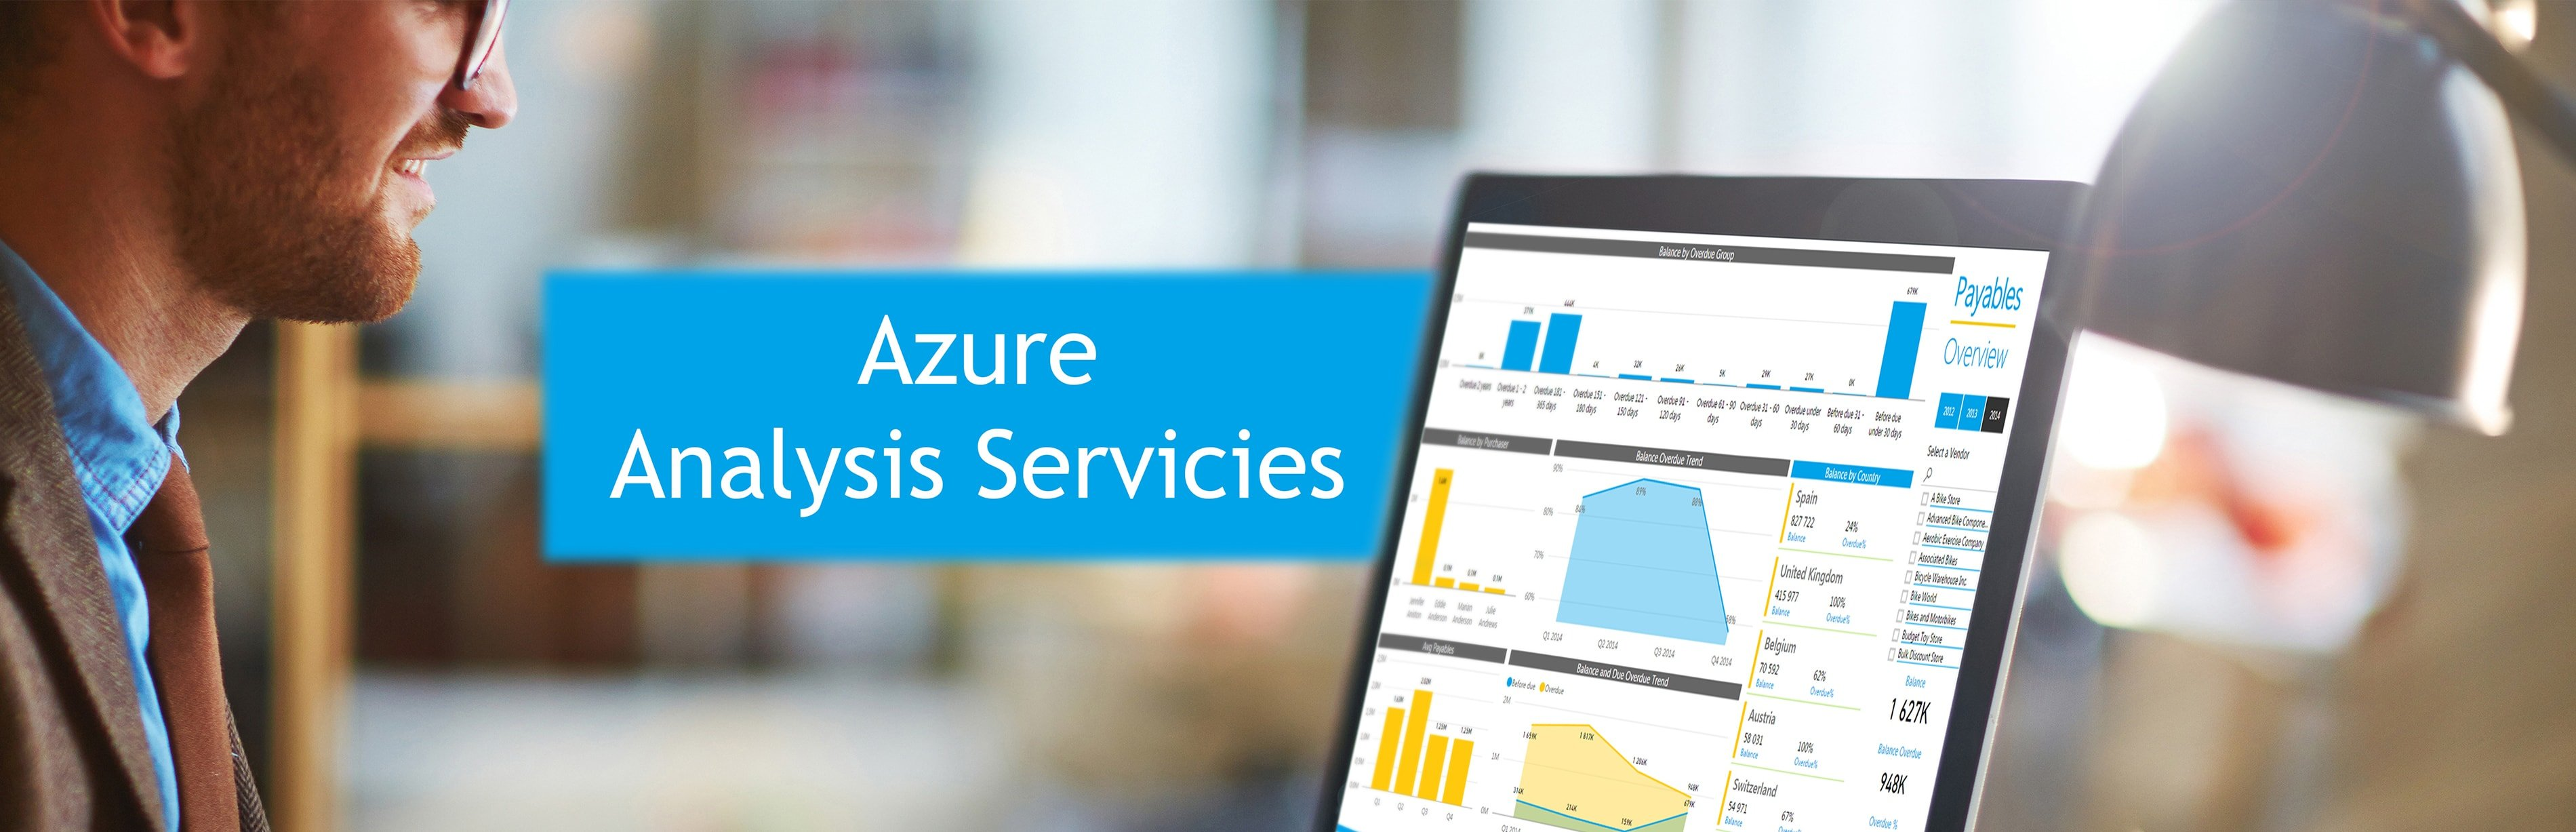 Data Bear Azure Analysis Services banner